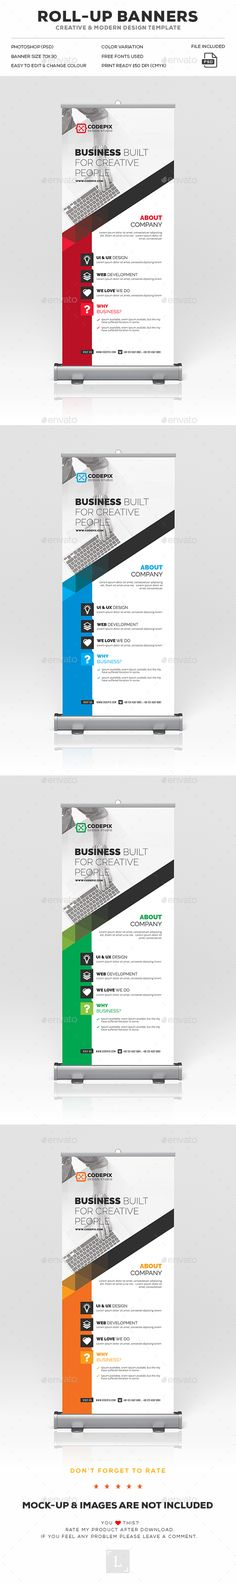 Abstract Background Geometric graphic, Icons and Icon illustrations - self review template